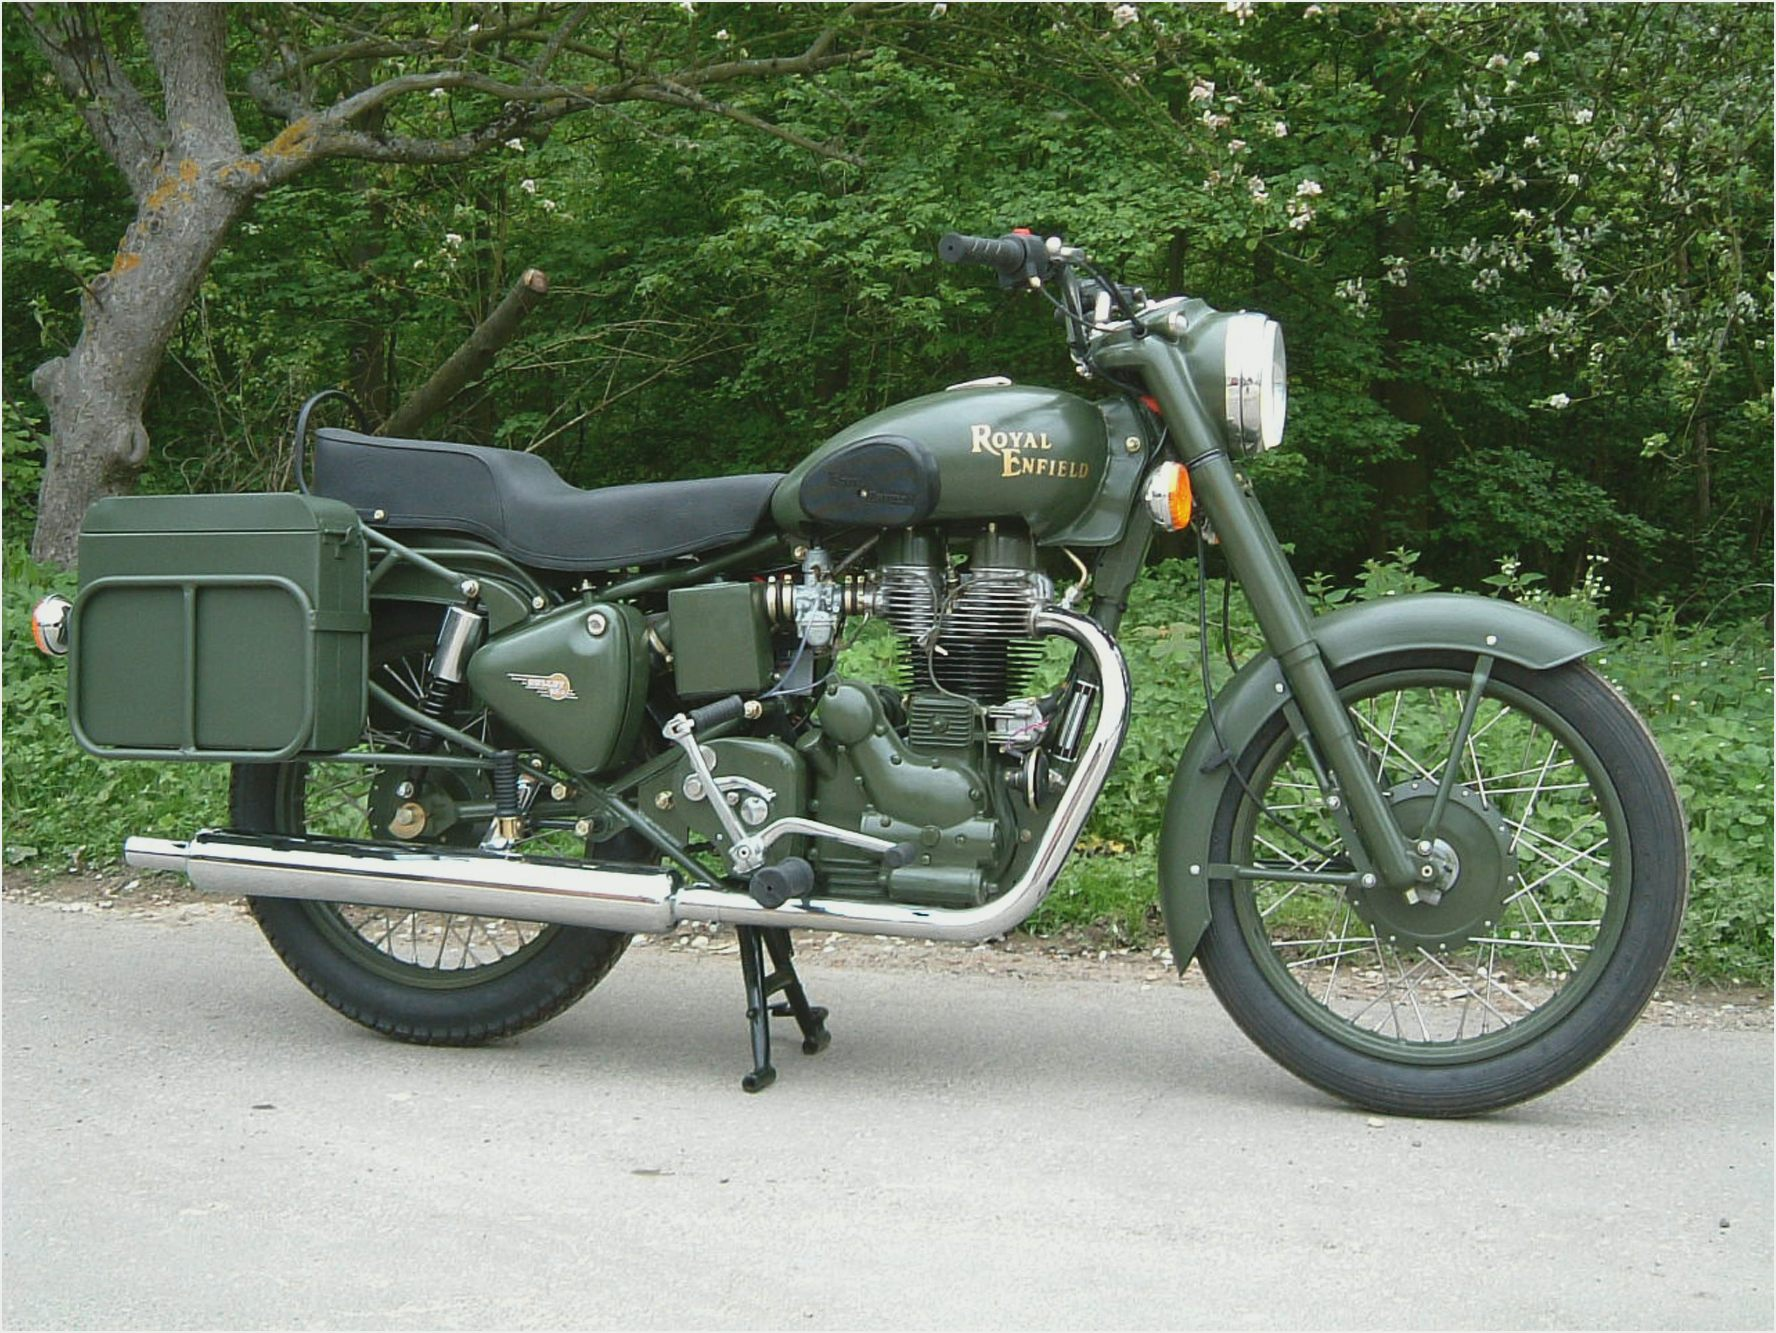 Royal Enfield Bullet 350 Army 1996 images #122783